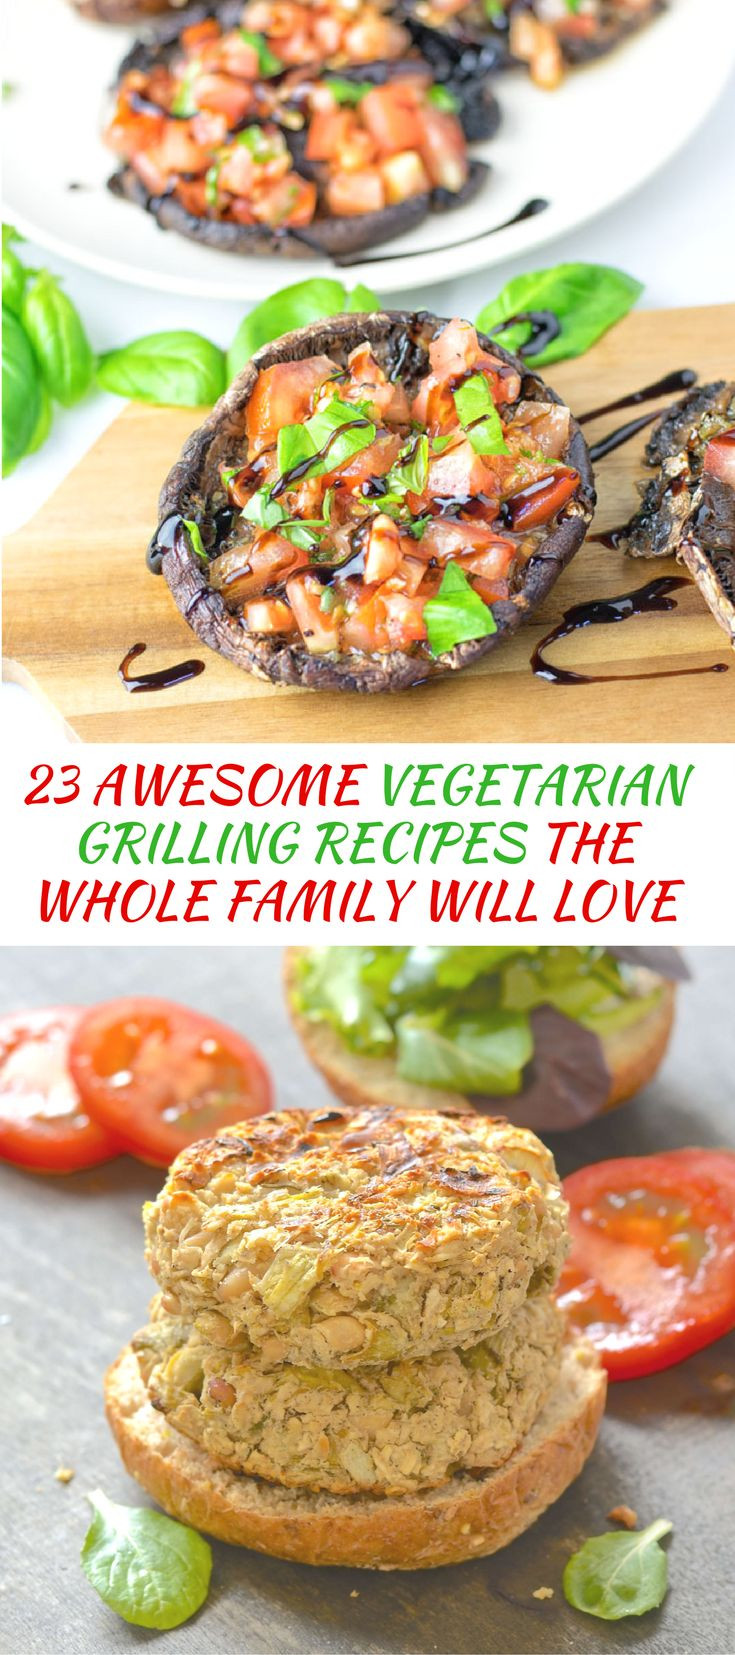 Vegetarian Bbq Recipes  2526 best images about Tasty Vegan BBQ on Pinterest